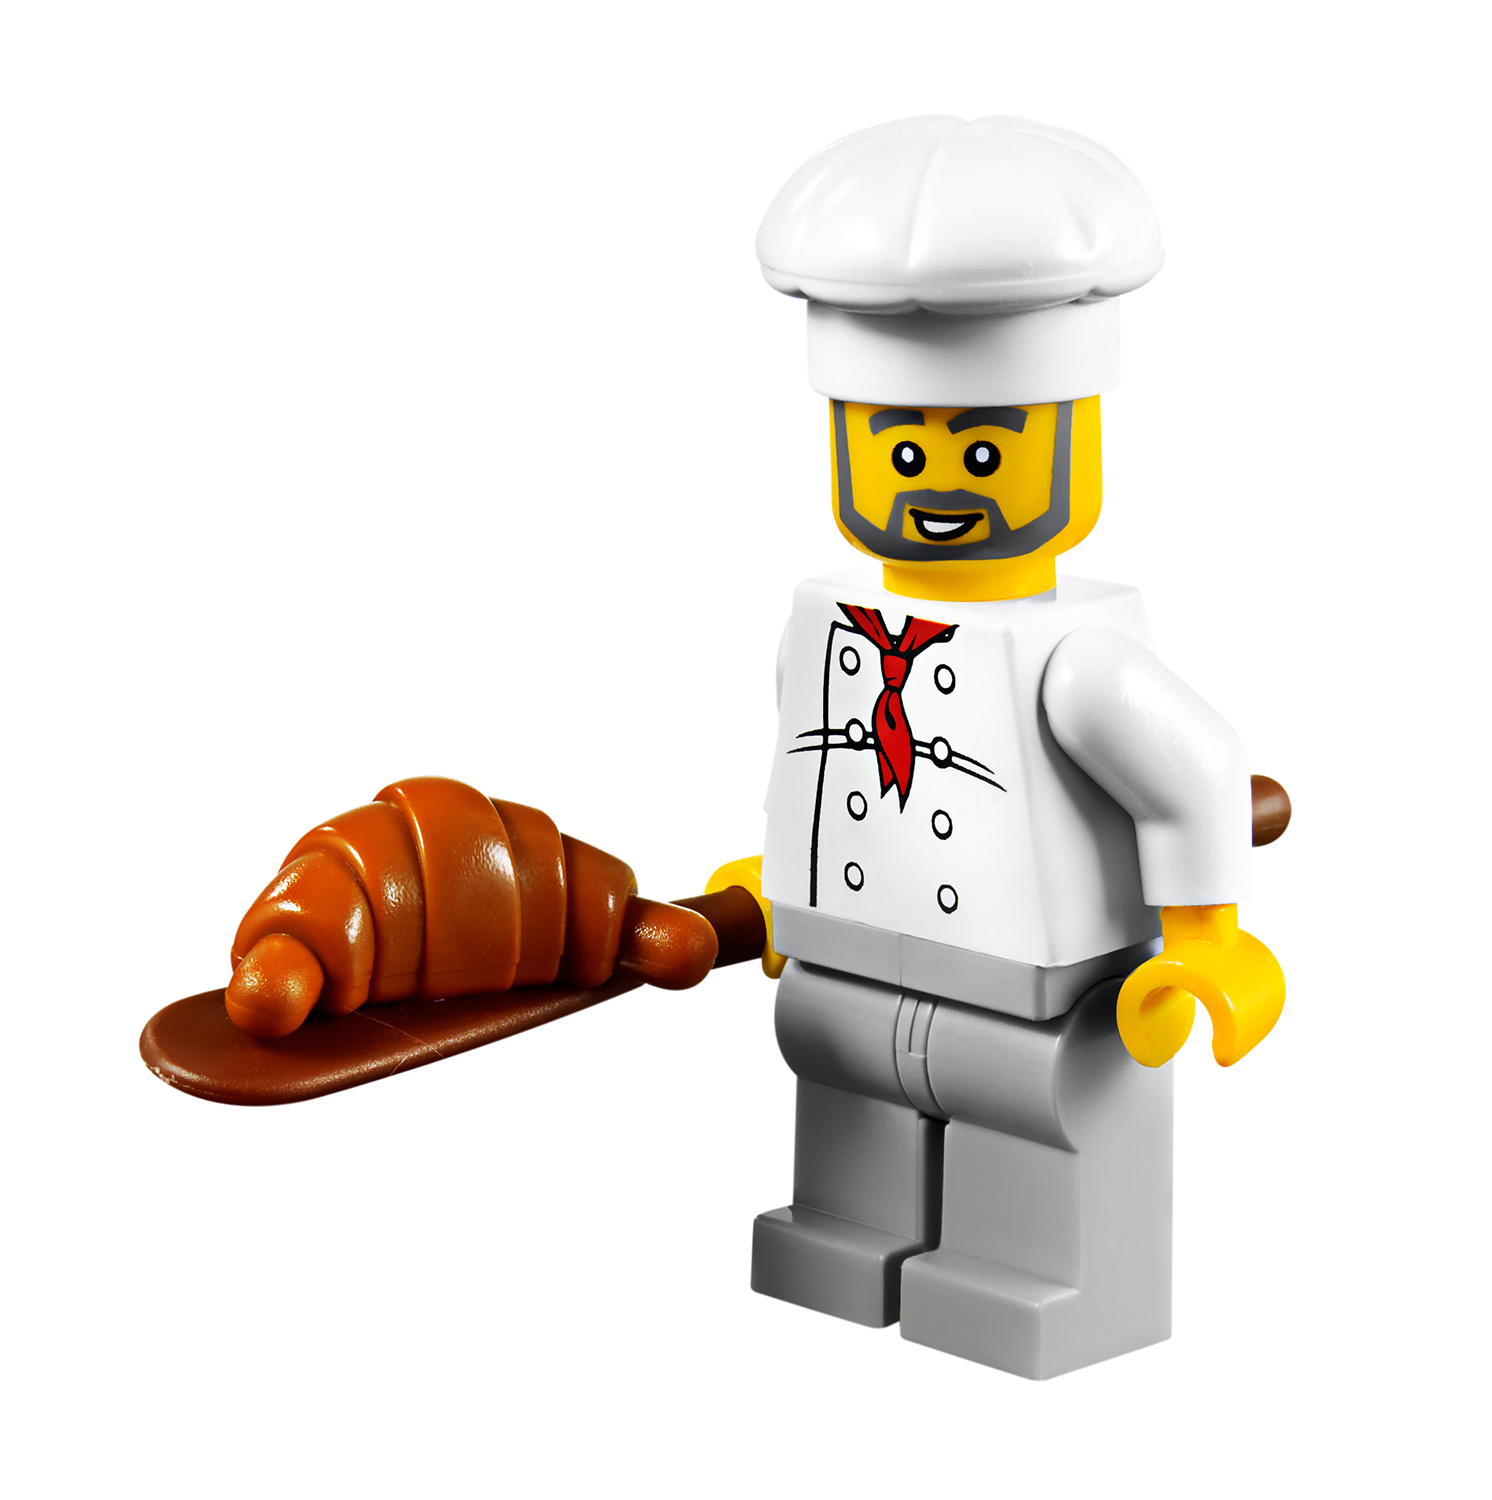 n_10216_minifigure_1_hr.jpg